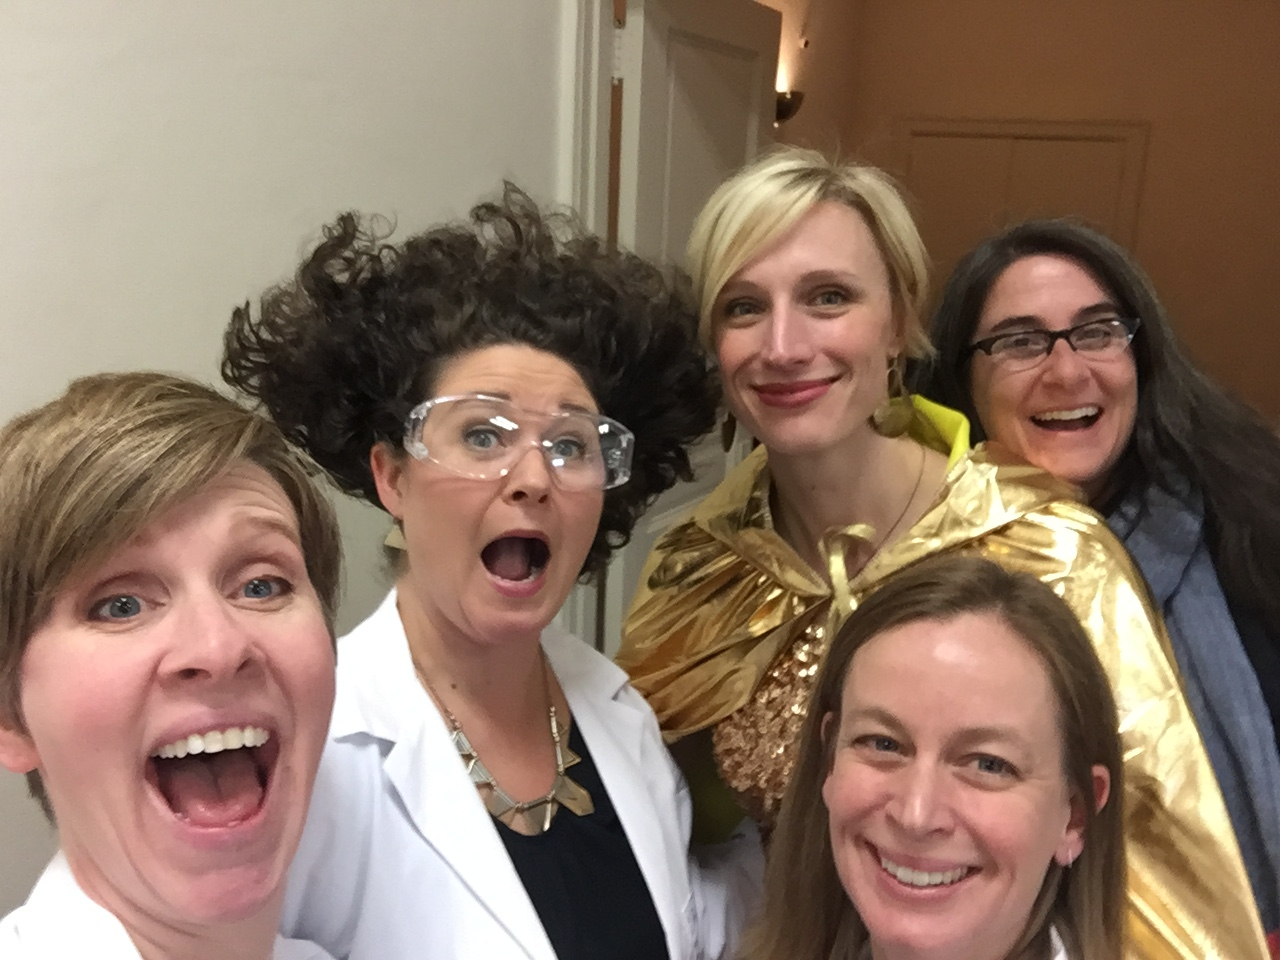 Thankful for this crew to pull off the event! And glad my hair cooperated to make me look like a mad scientist! (theme was Mad About Science!)